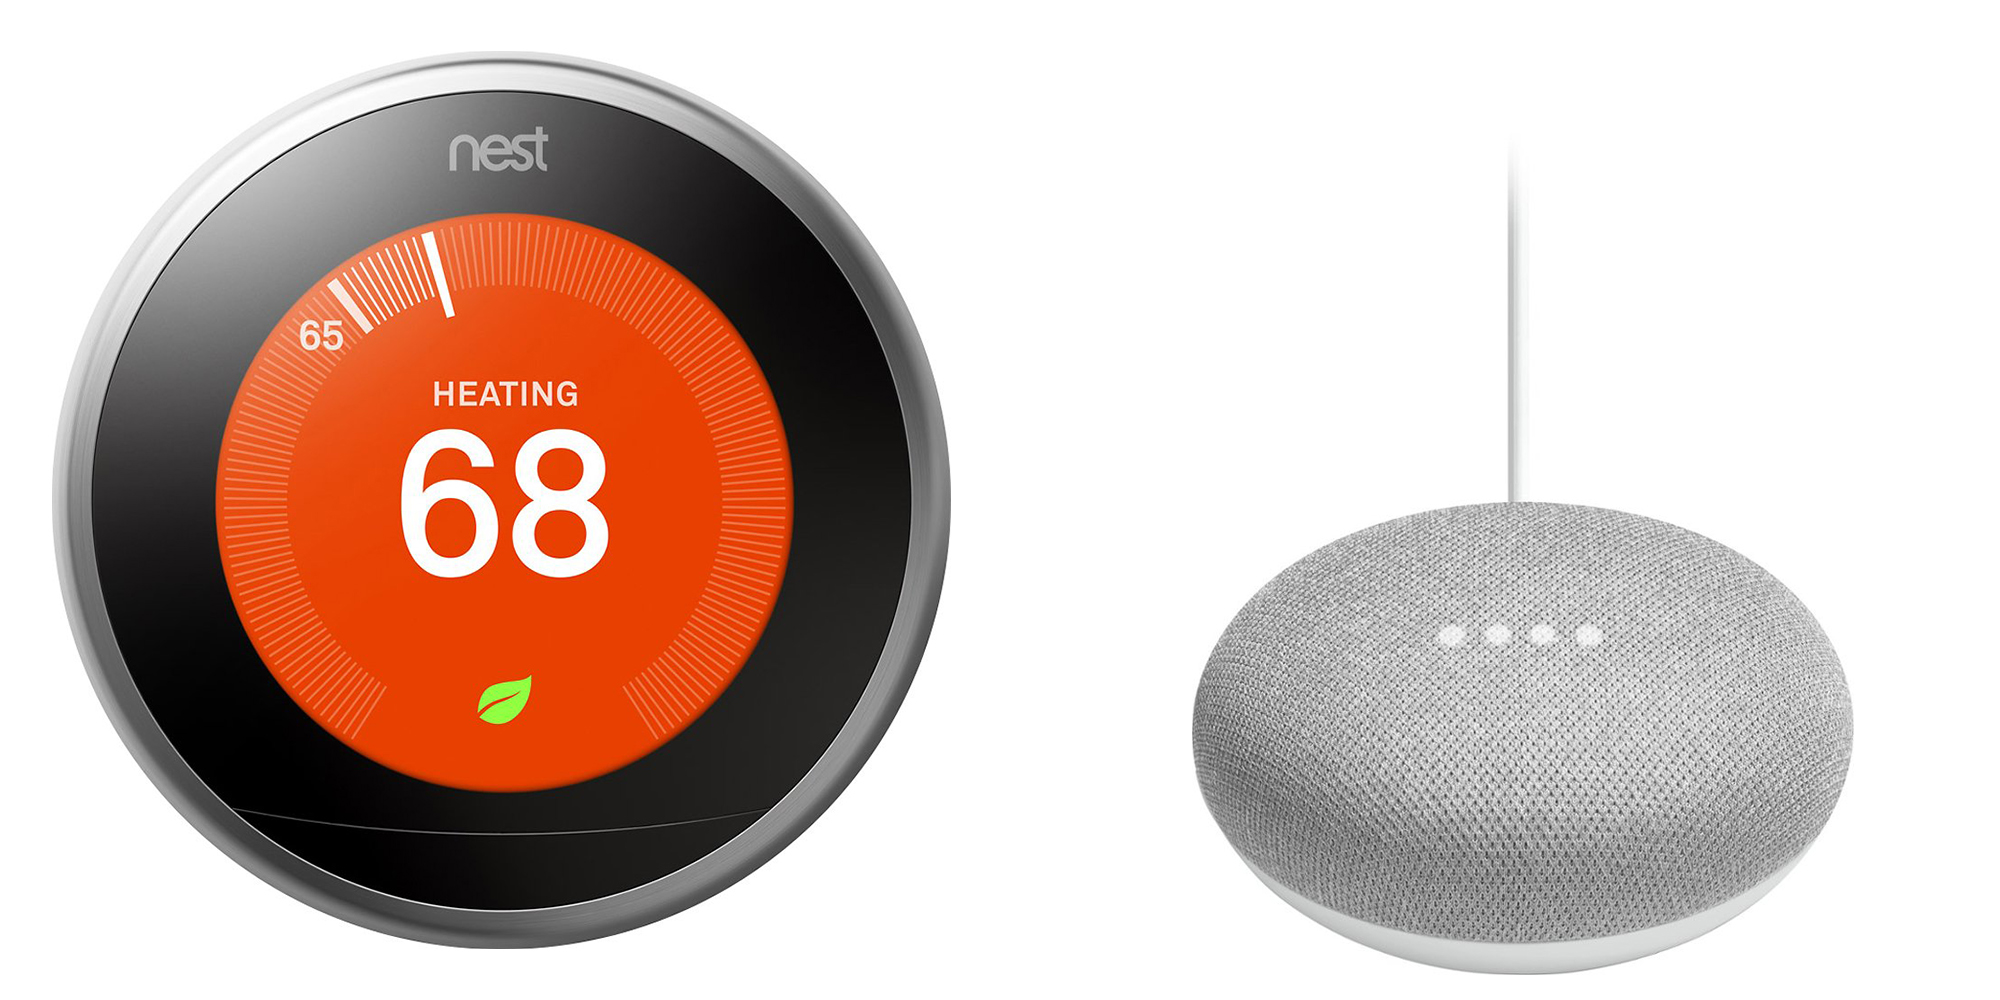 Jump start your smart home w/ a Nest Thermostat + Google Home Mini for $190 ($250+ value)